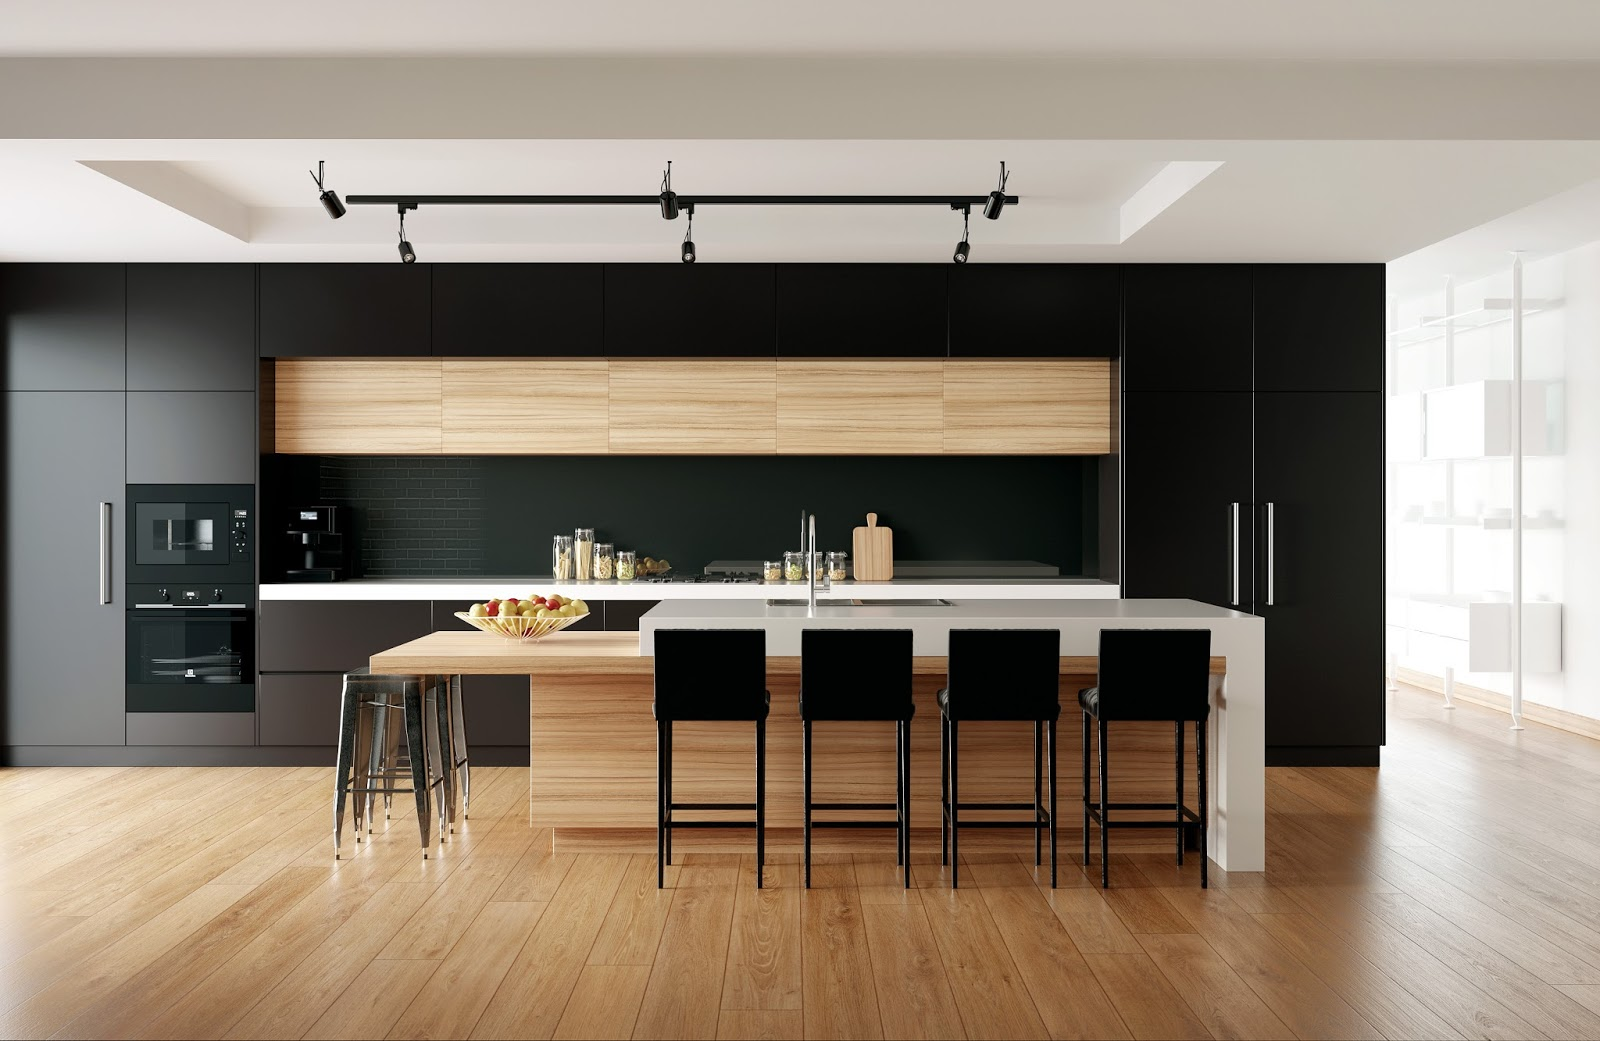 Black Kitchen Render   Scene To Learn More About Interior Lighting